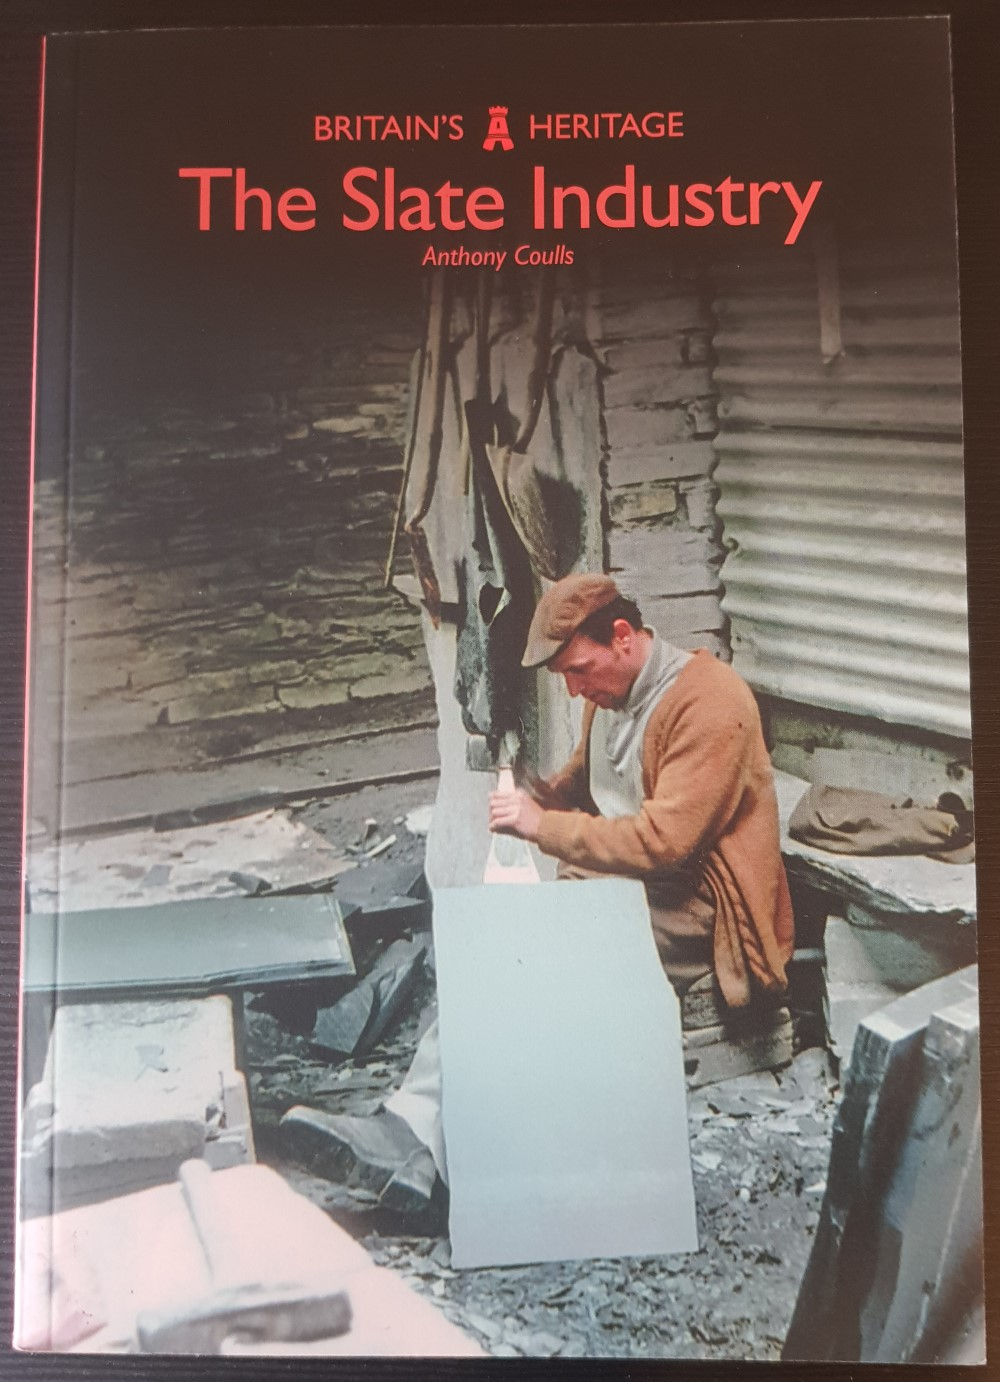 The Slate Industry – Anthony Coulls